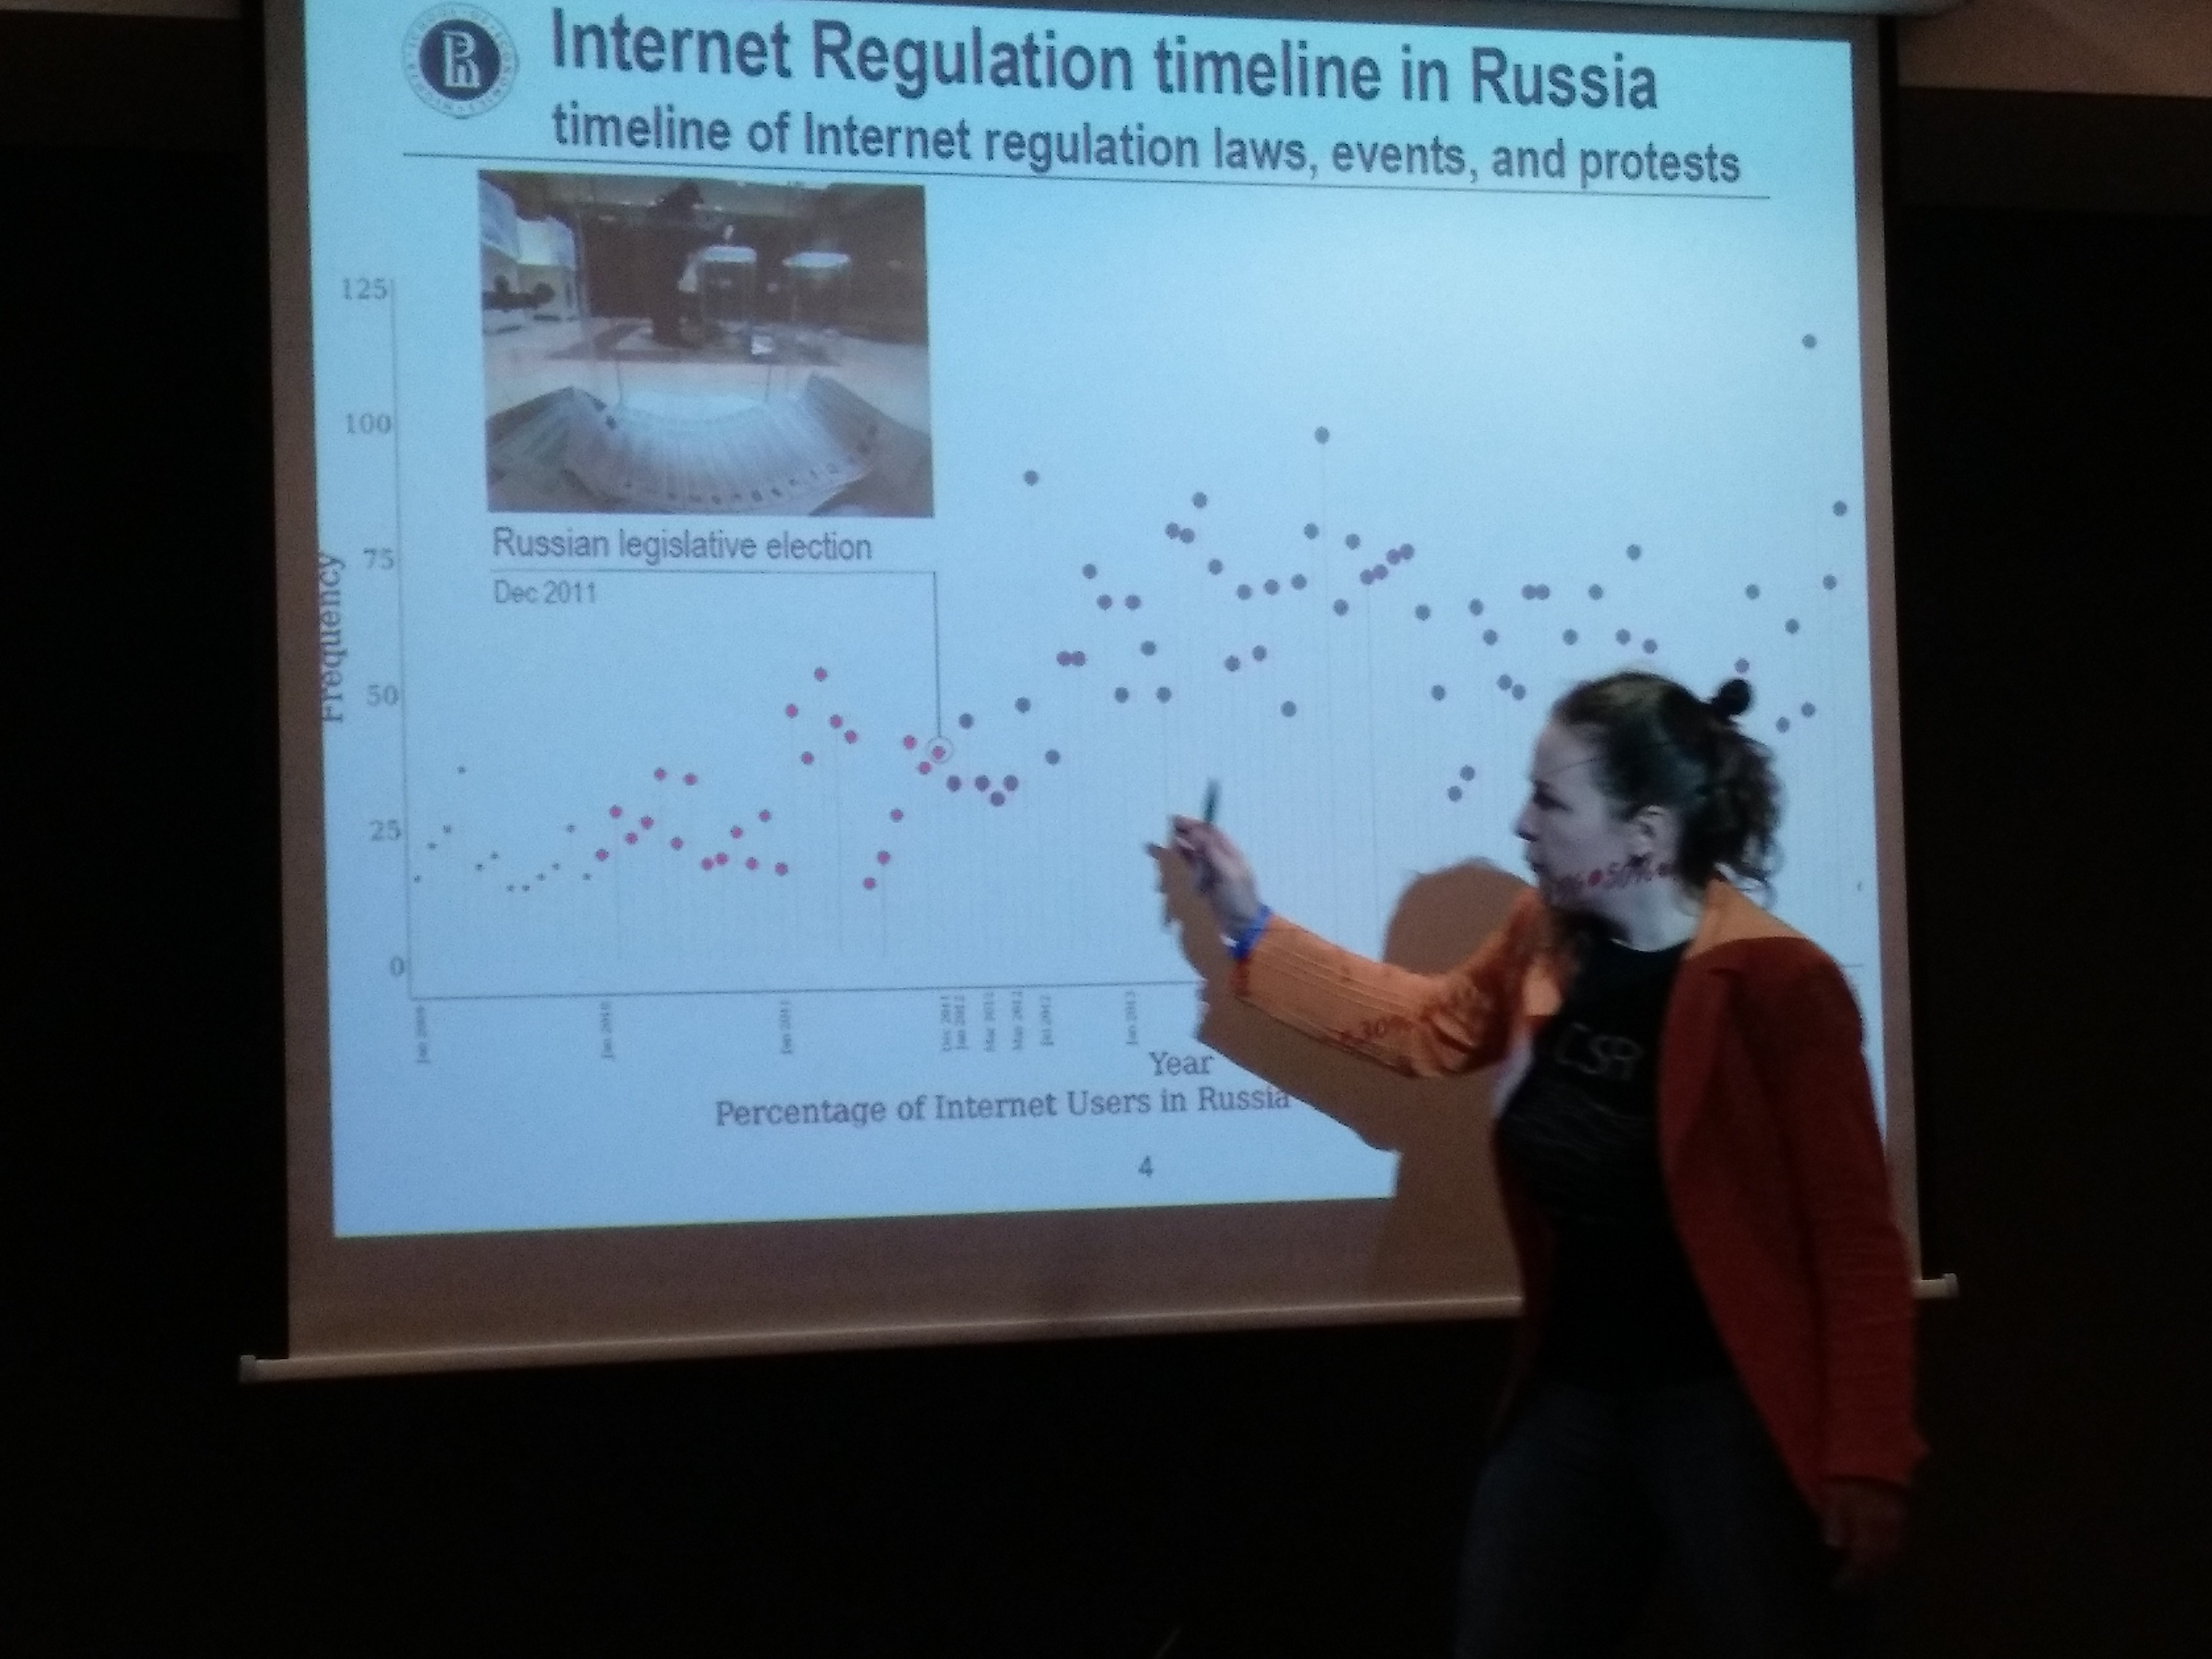 Anna Shirokanova presents a timeline of internet regulation in Russia